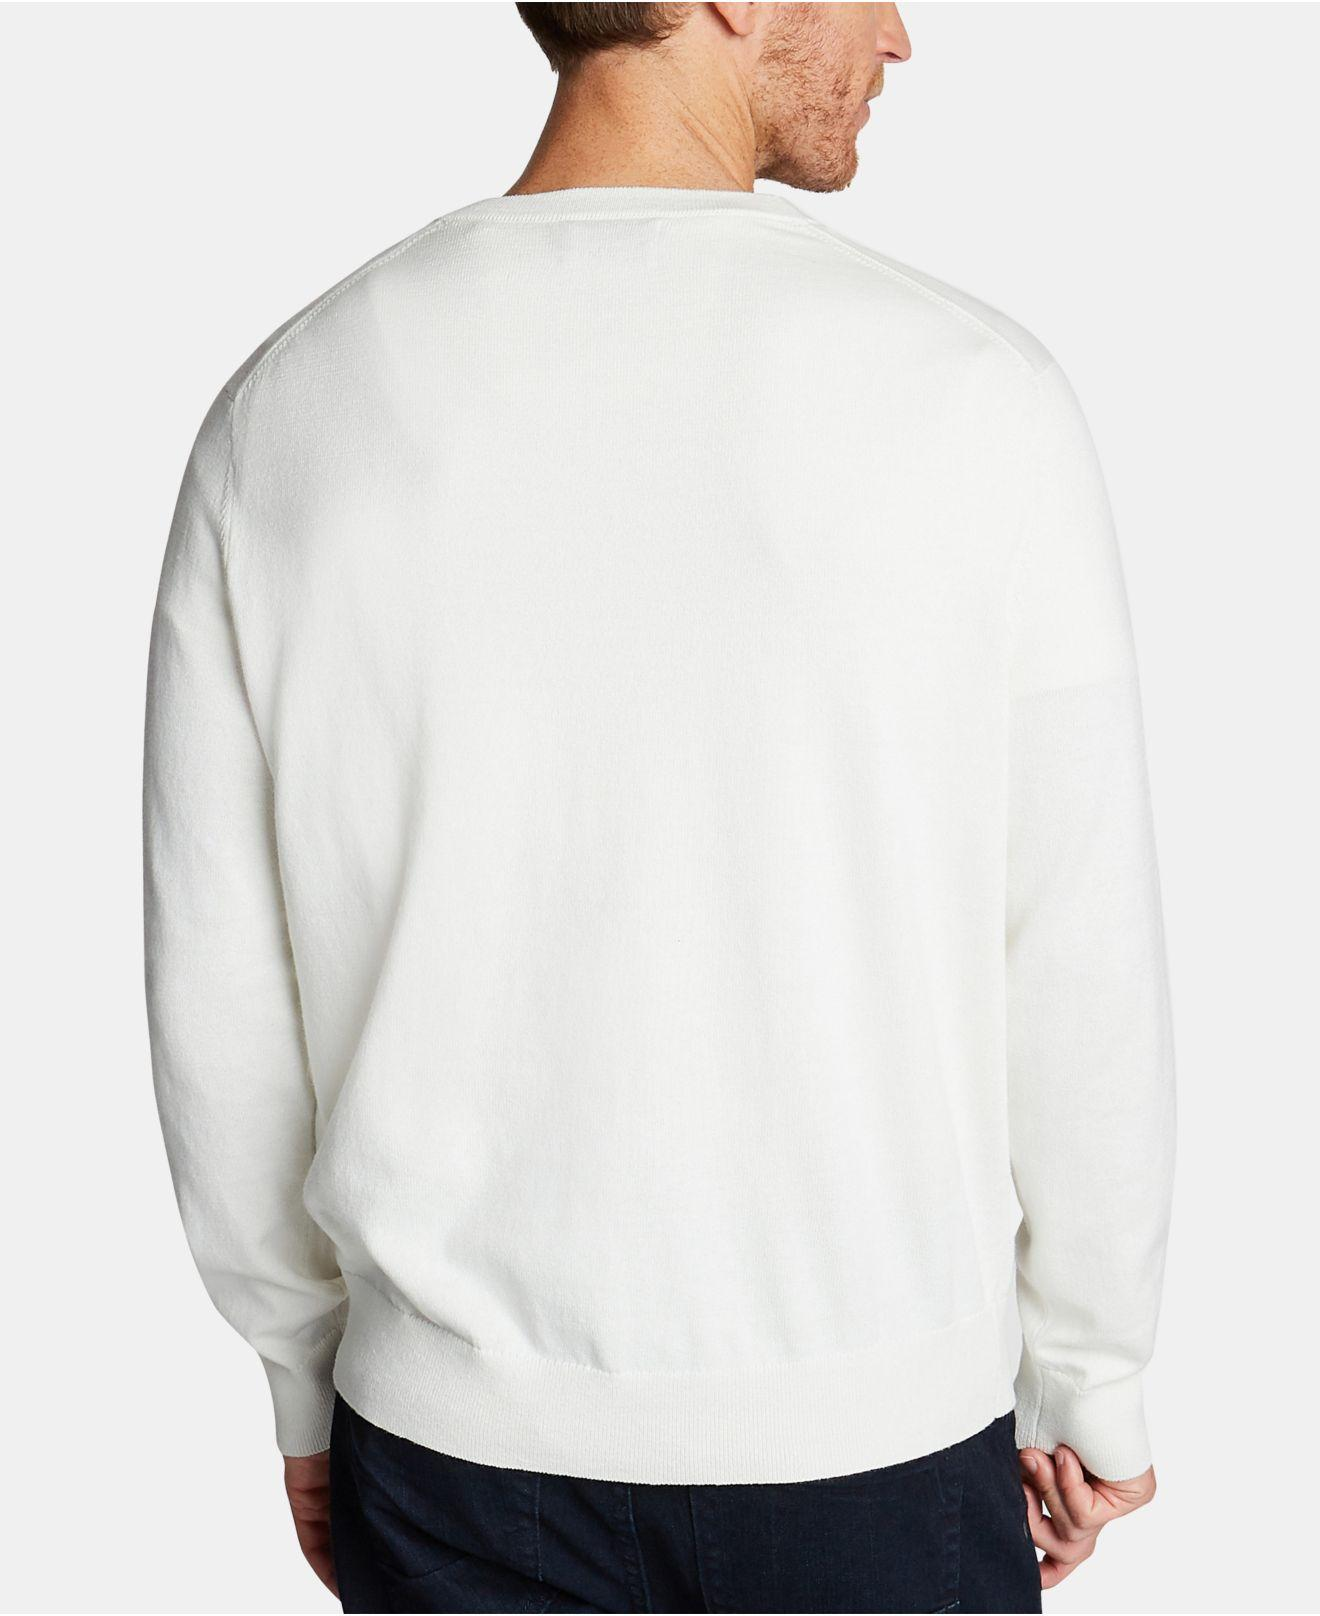 15d10712aa3 Lyst - Nautica Lightweight Jersey V-neck Sweater in White for Men